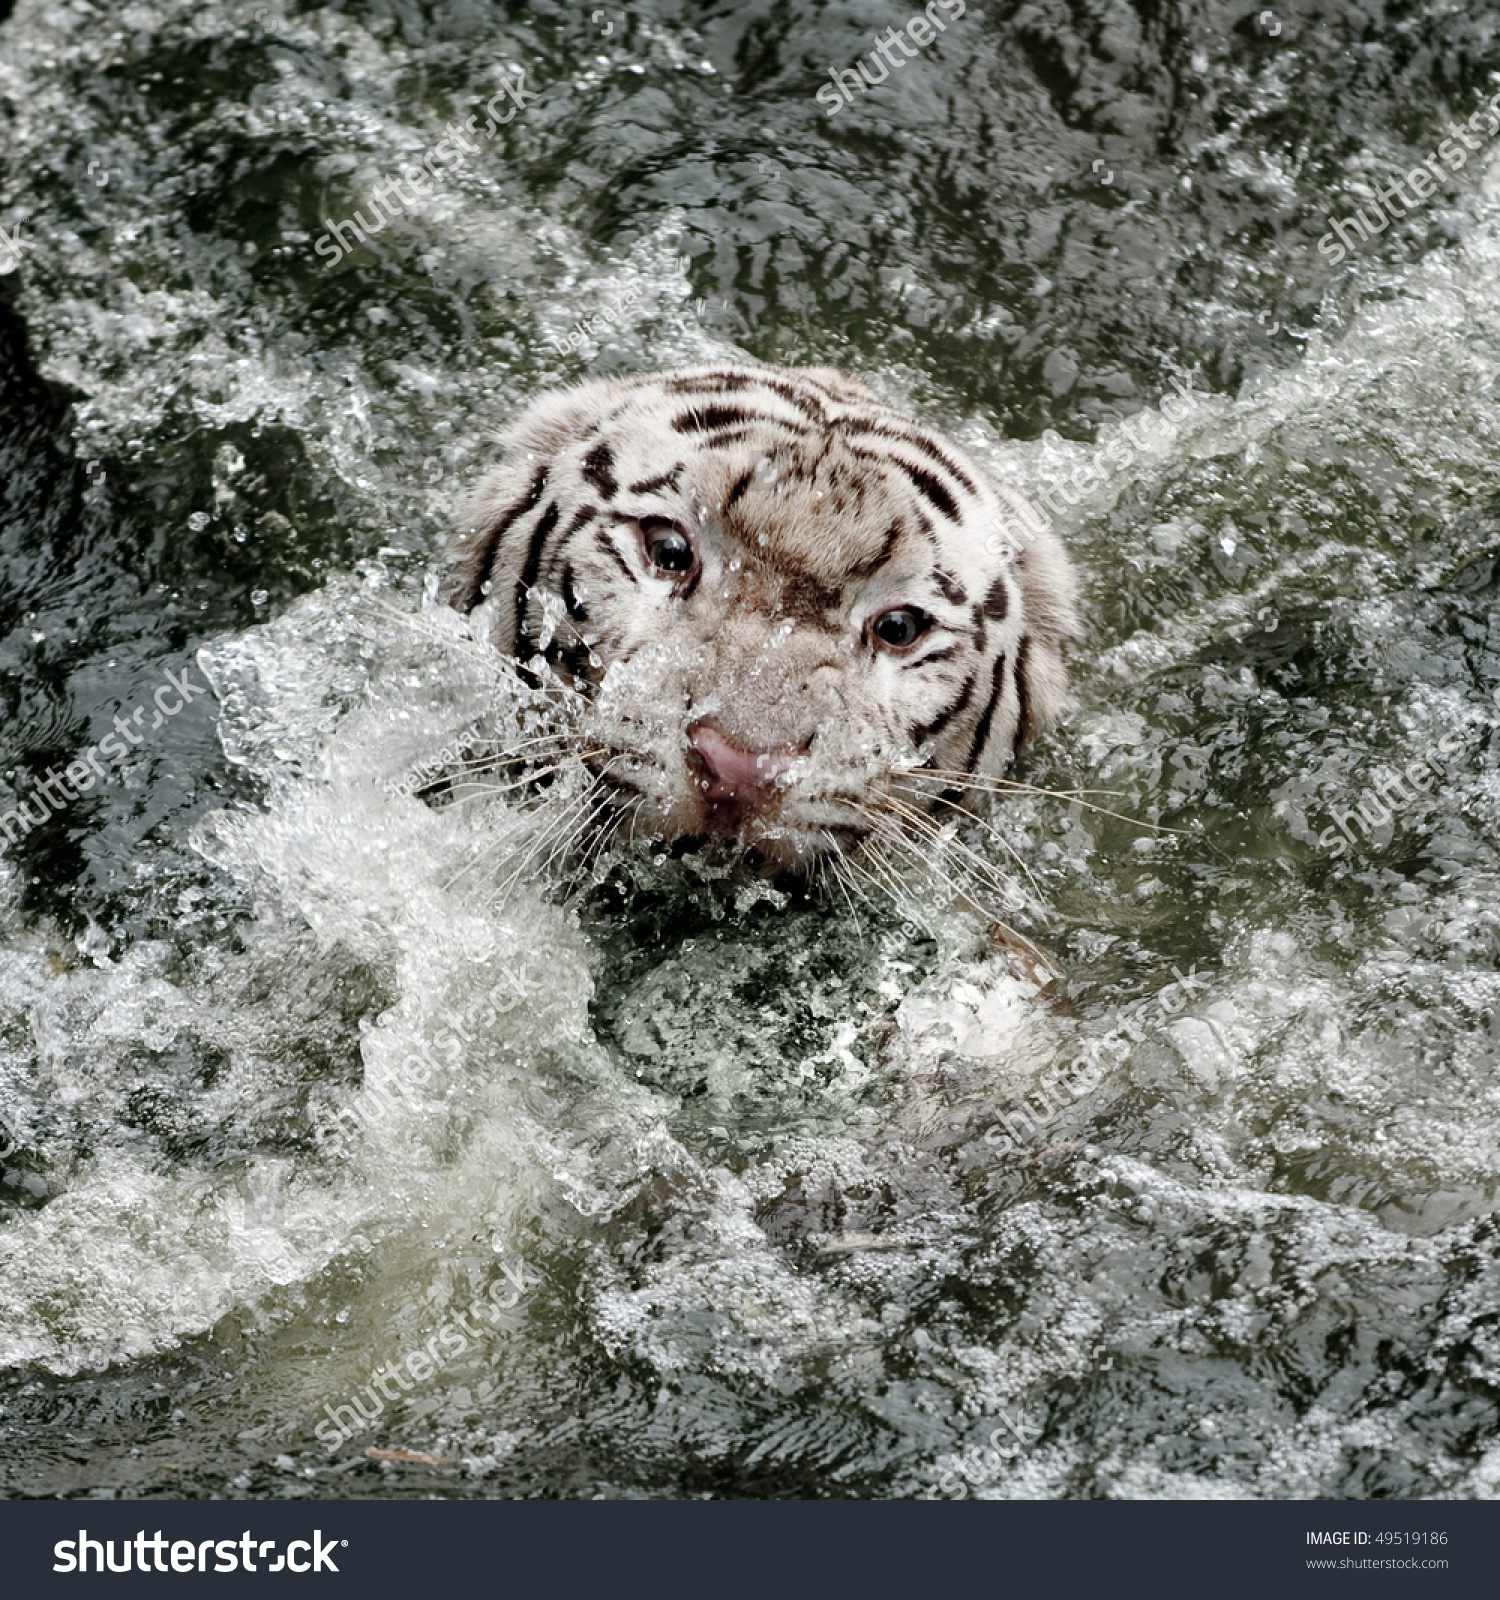 wild white tiger roaring coming out stock photo (edit now) 49519186